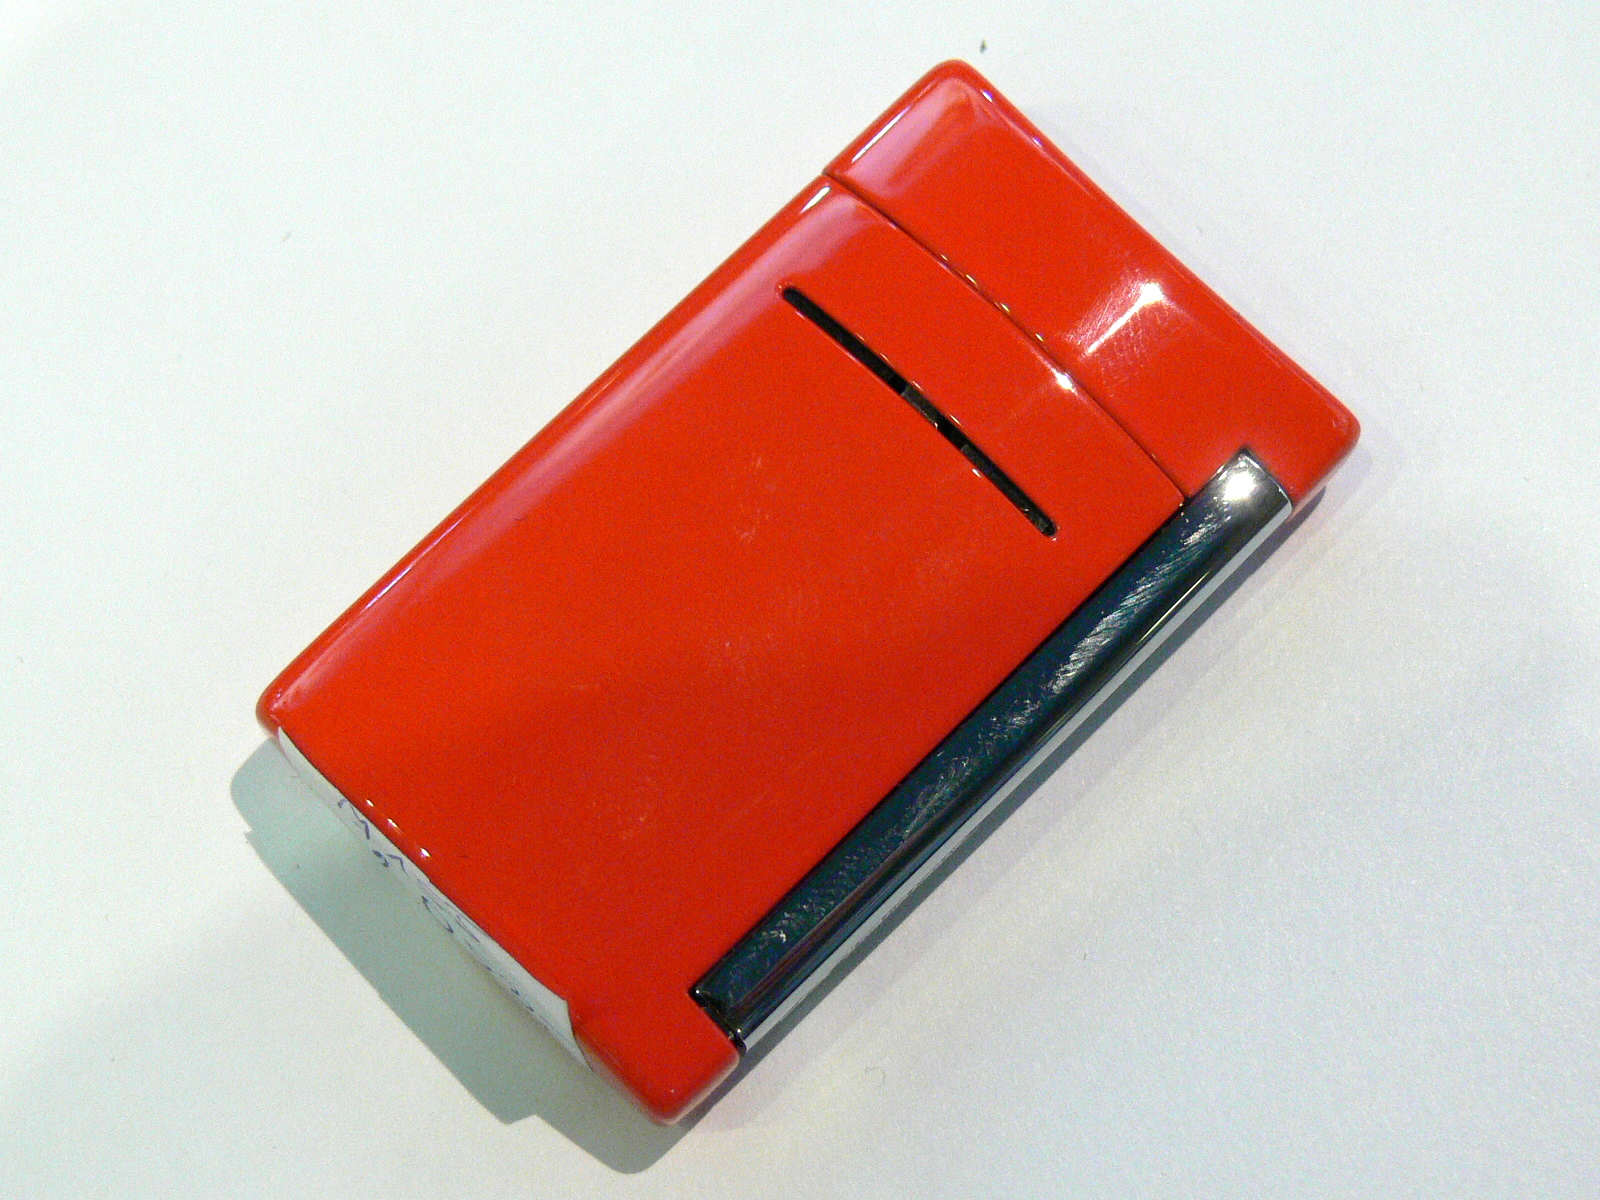 Zapalovač J.T. Dupont orange Mini